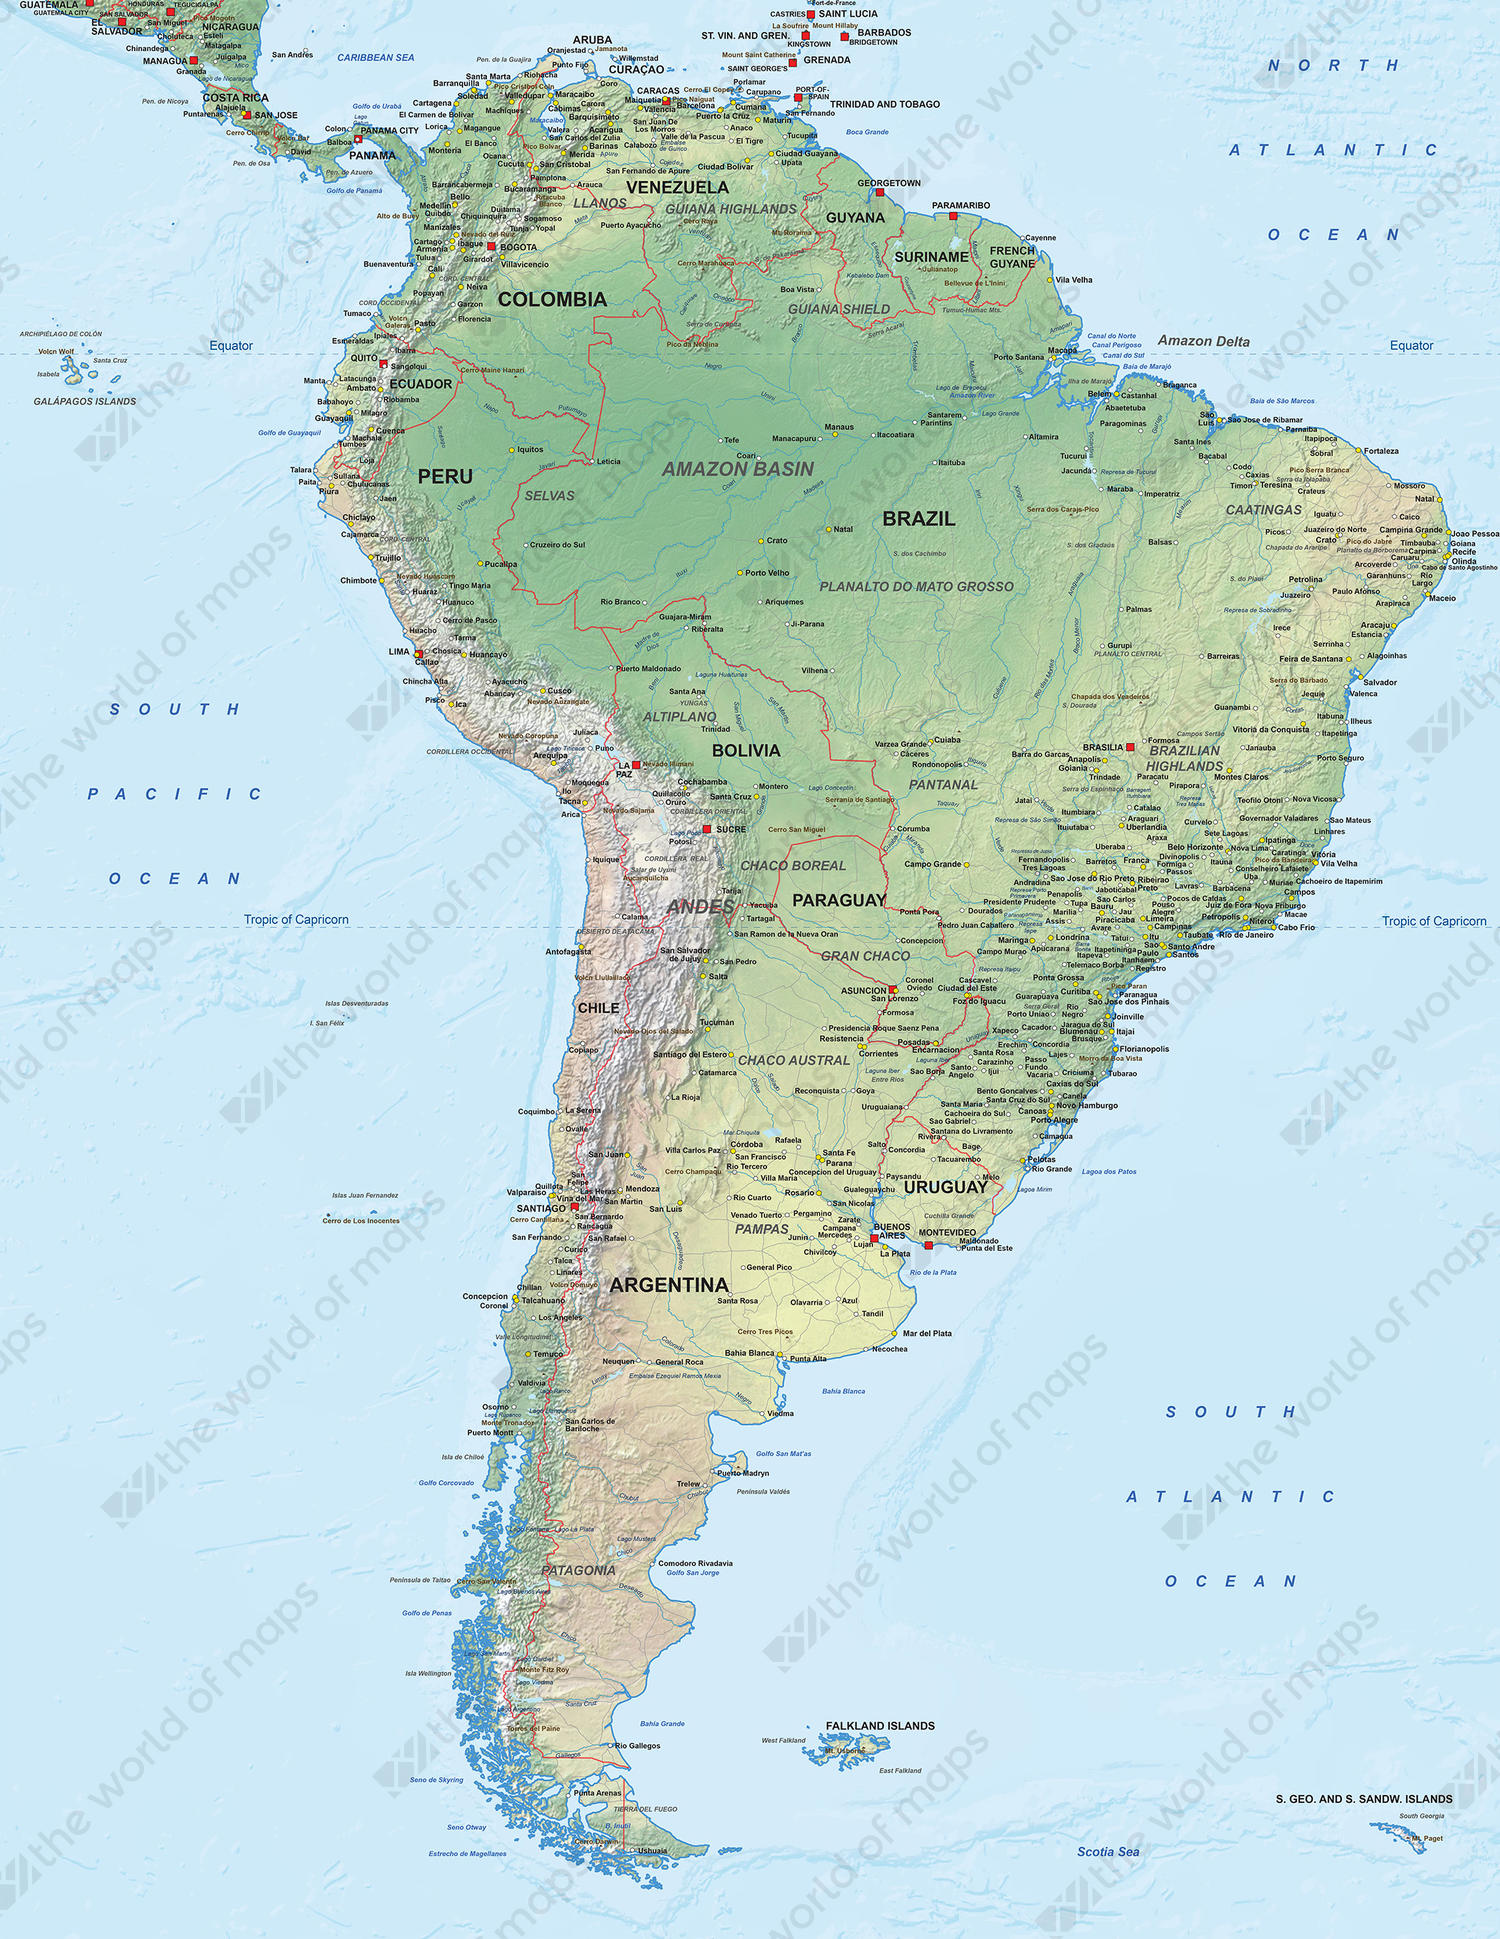 Digital Map South America Physical 1286 | The World of Maps.com